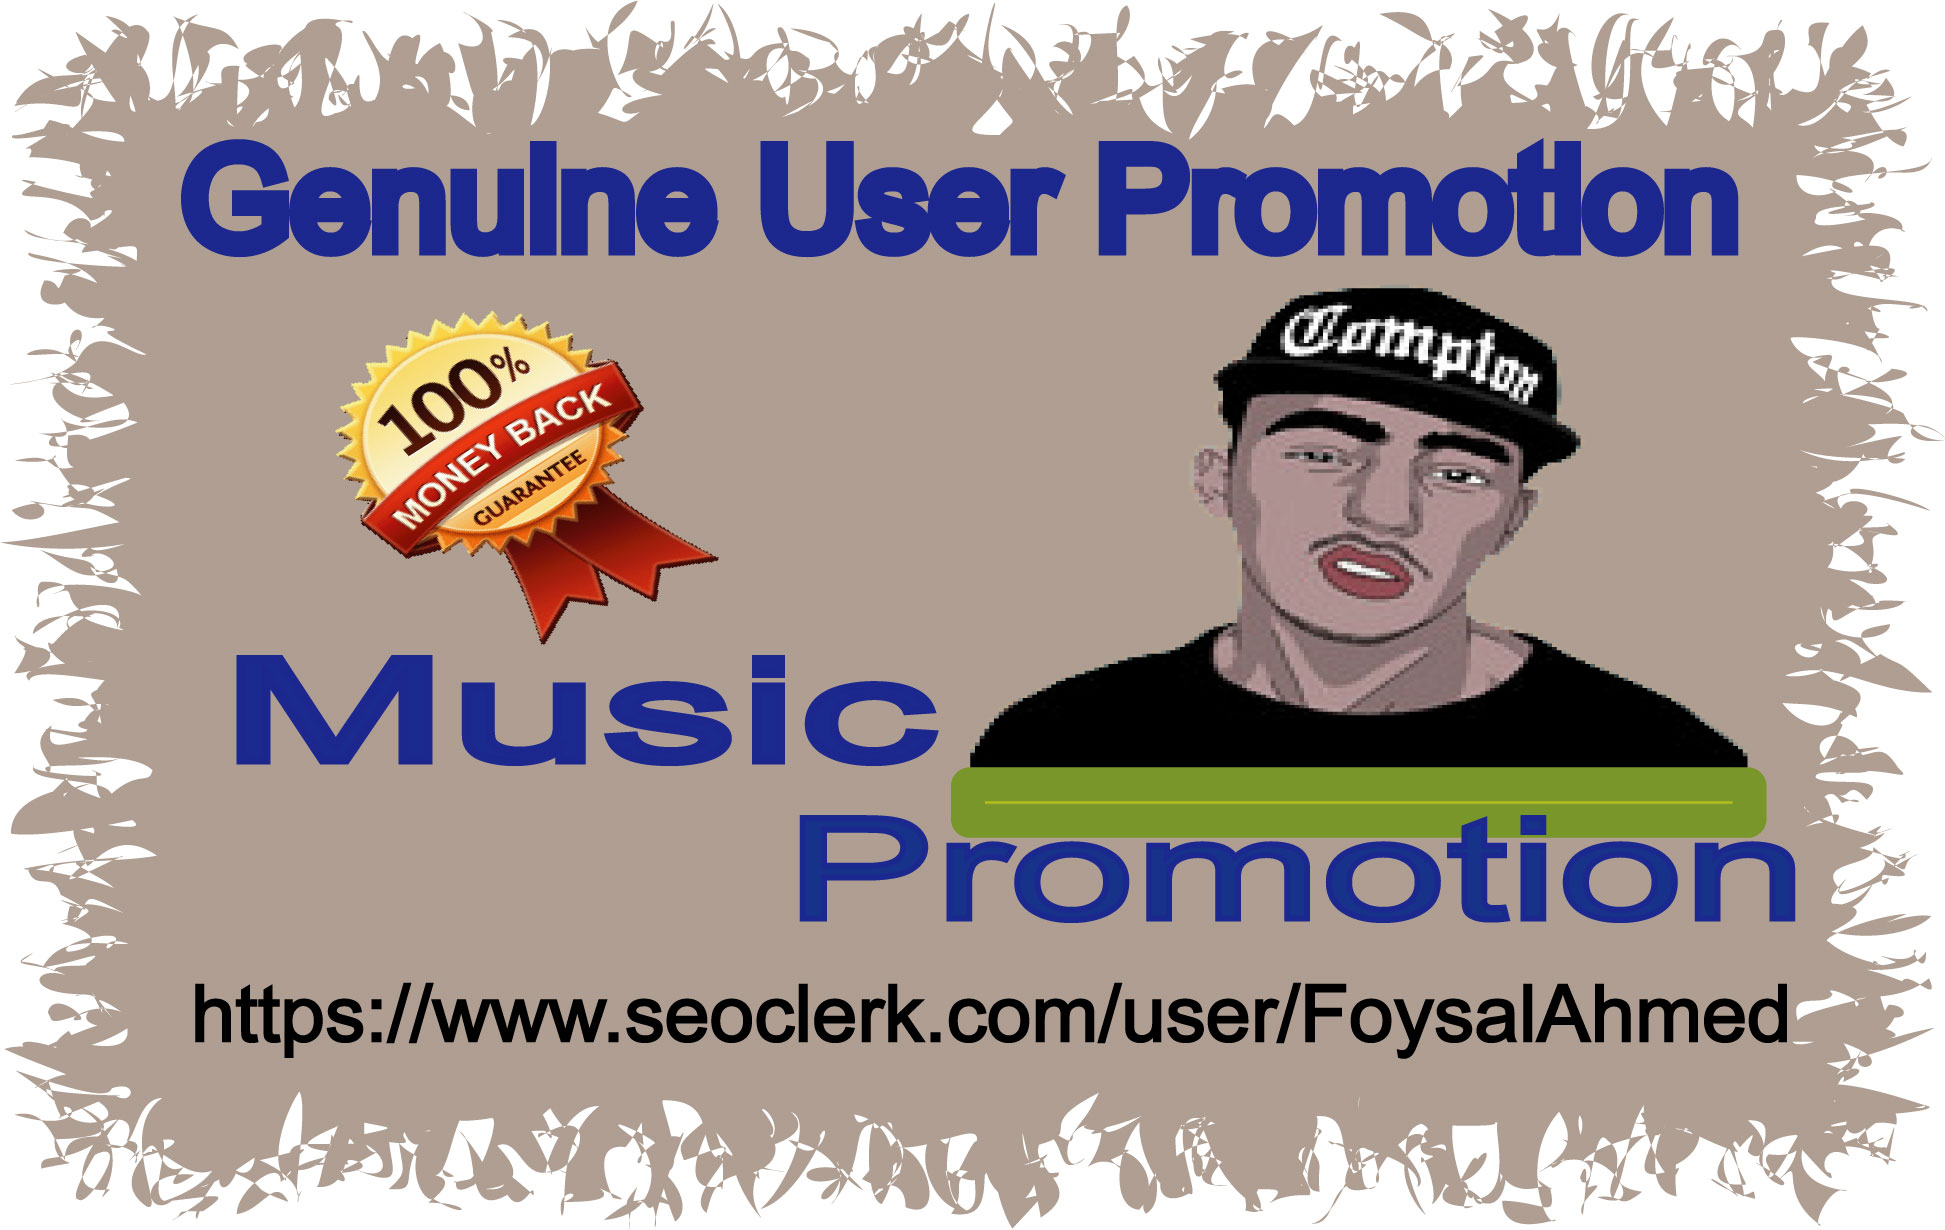 Music Promotion 900K MUSIC PLAY 1000 Llke & 500 Re-post & 50 Manual C0mments For Your Track